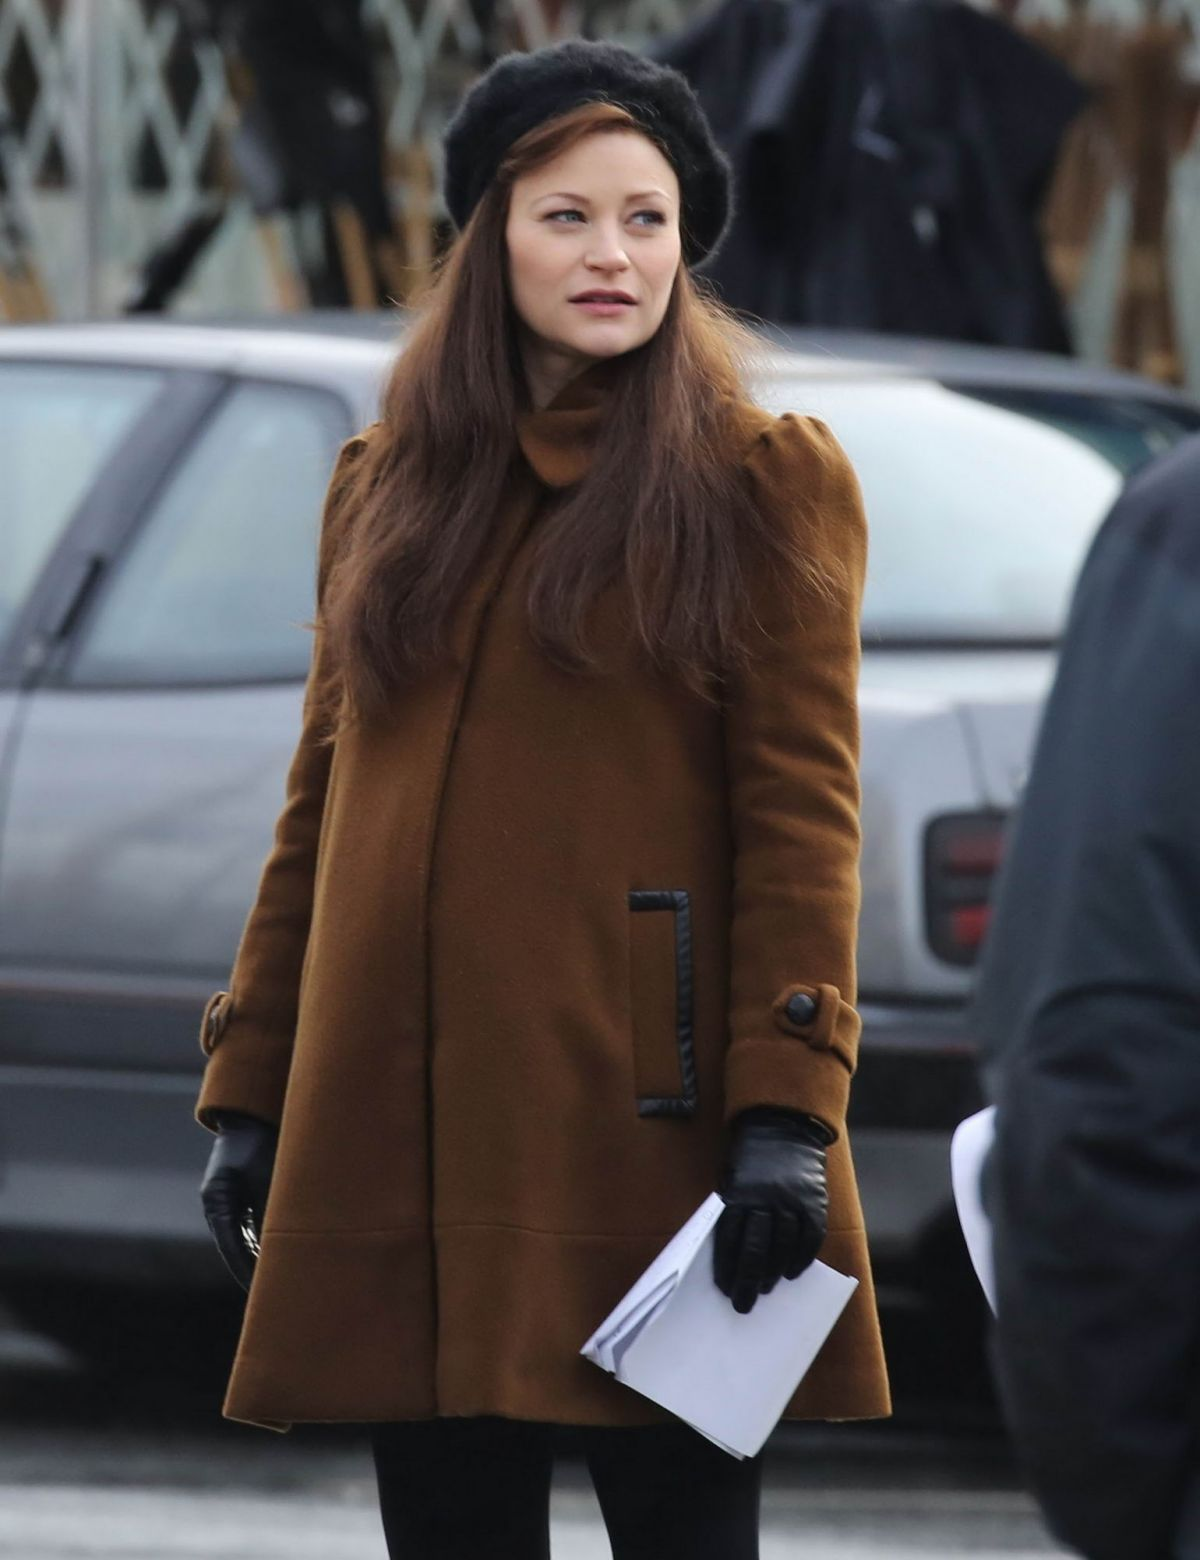 EMILIE DE RAVIN on the Set of Once Upon A Time in Vancouver 01/19/2016